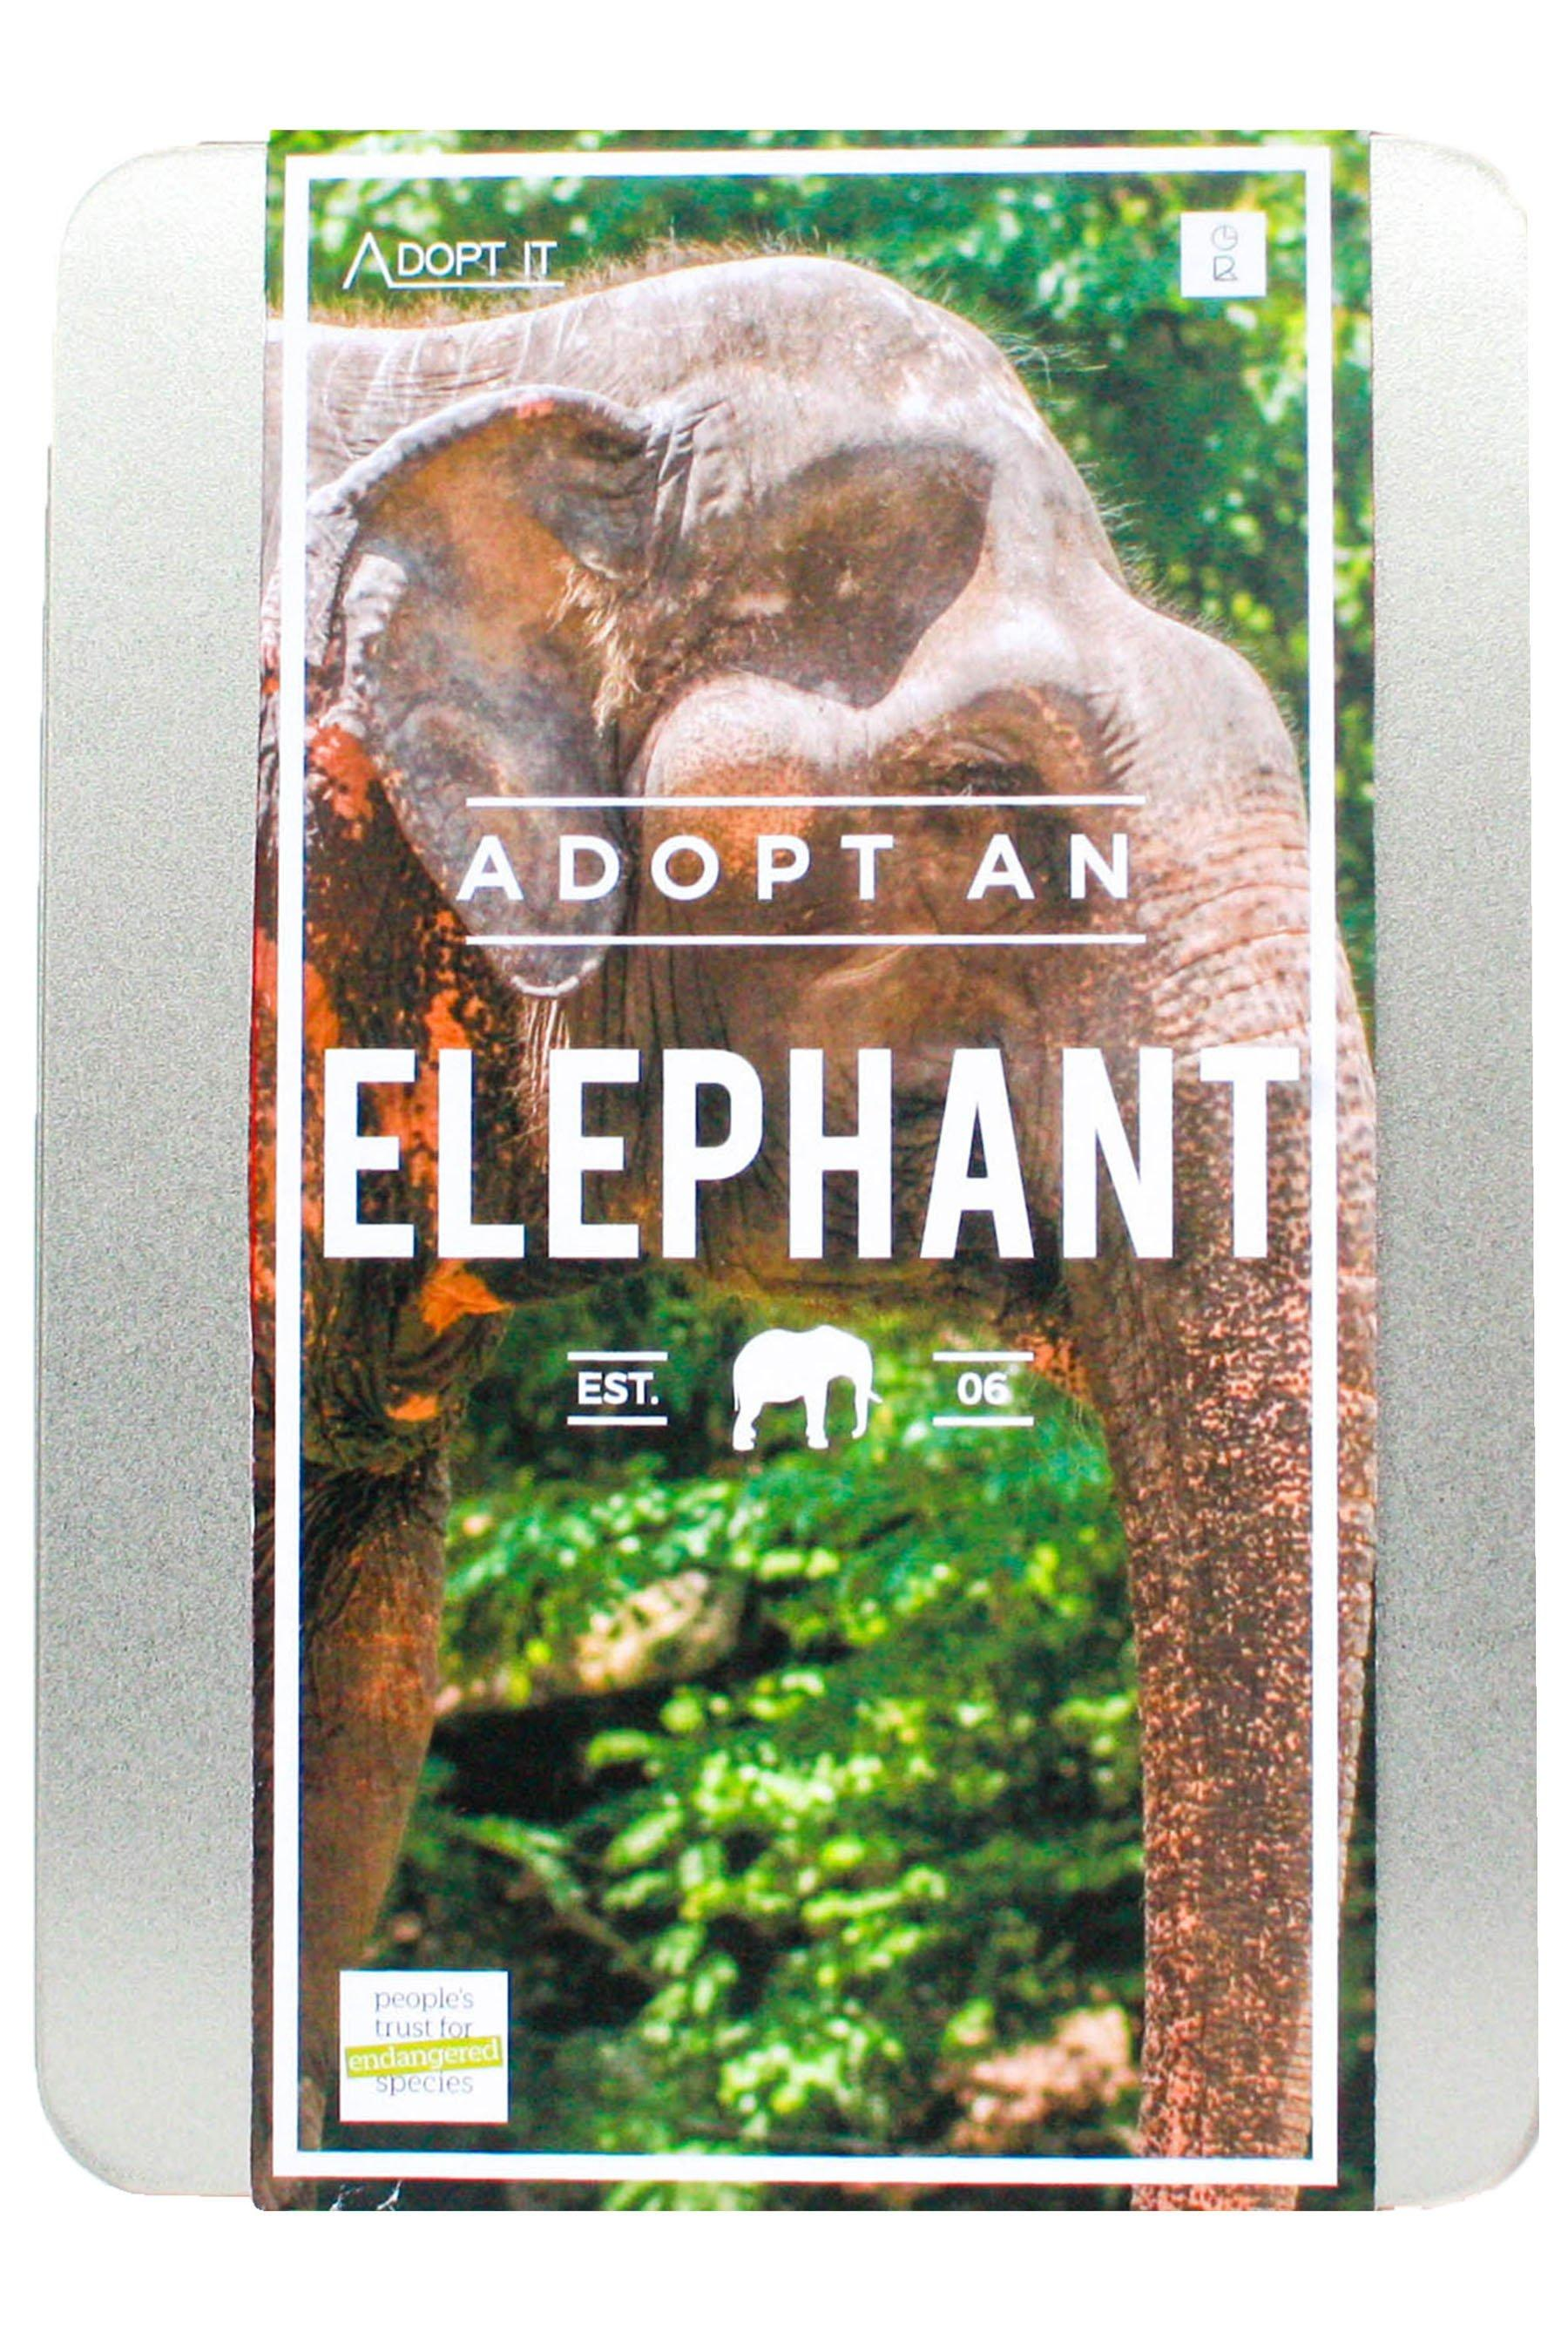 Compare prices for Adopt It - Adopt an Elephant